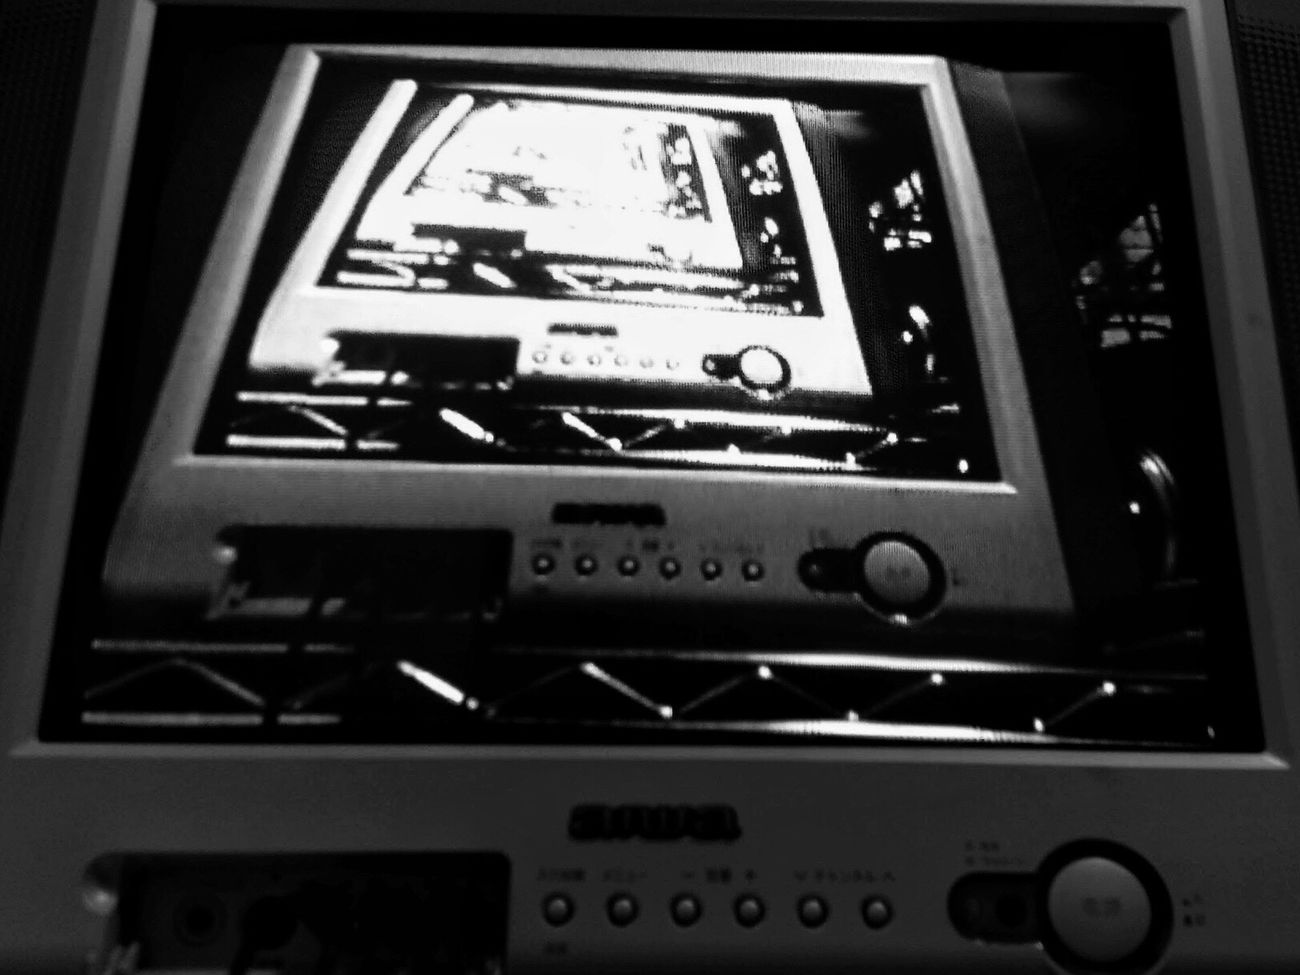 Technology Communication Text Control Close-up No People Indoors  Control Panel Gauge Day Television Spiral EyeEm Best Shots Media Tv Interior House Monochrome Monochrome Photography Mono White And Black